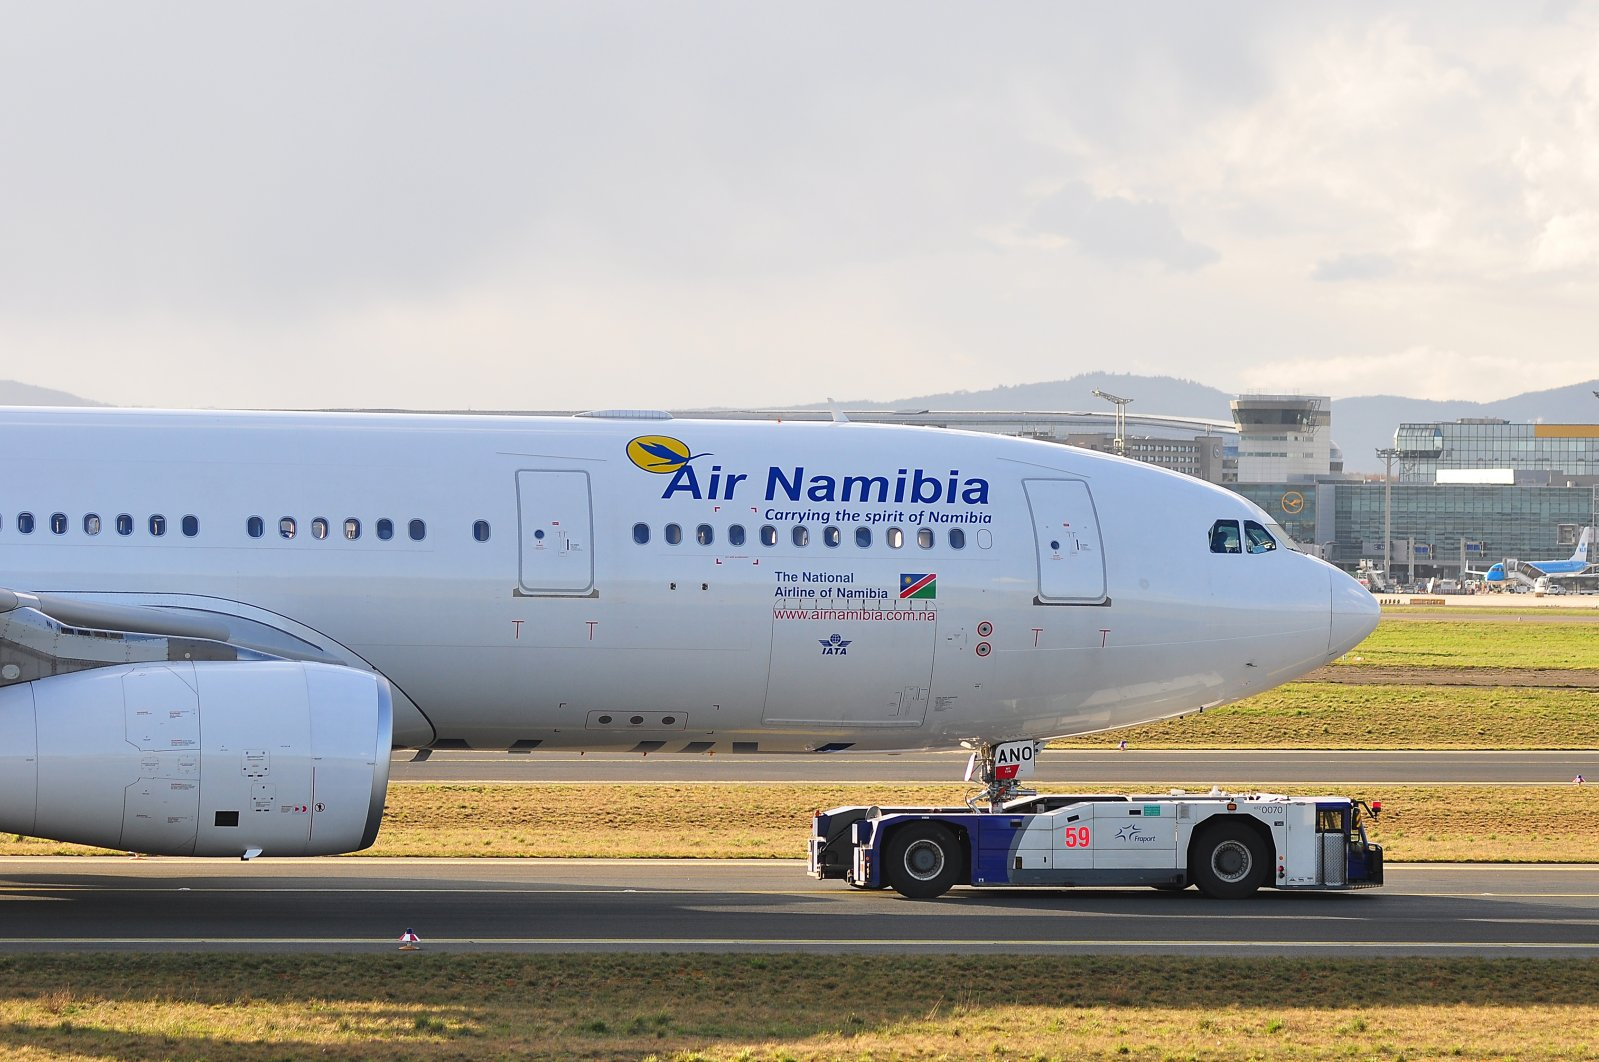 An Air Namibia aircraft on the runway, in Frankfurt, Germany, April 7, 2016. (Shutterstock Photo)